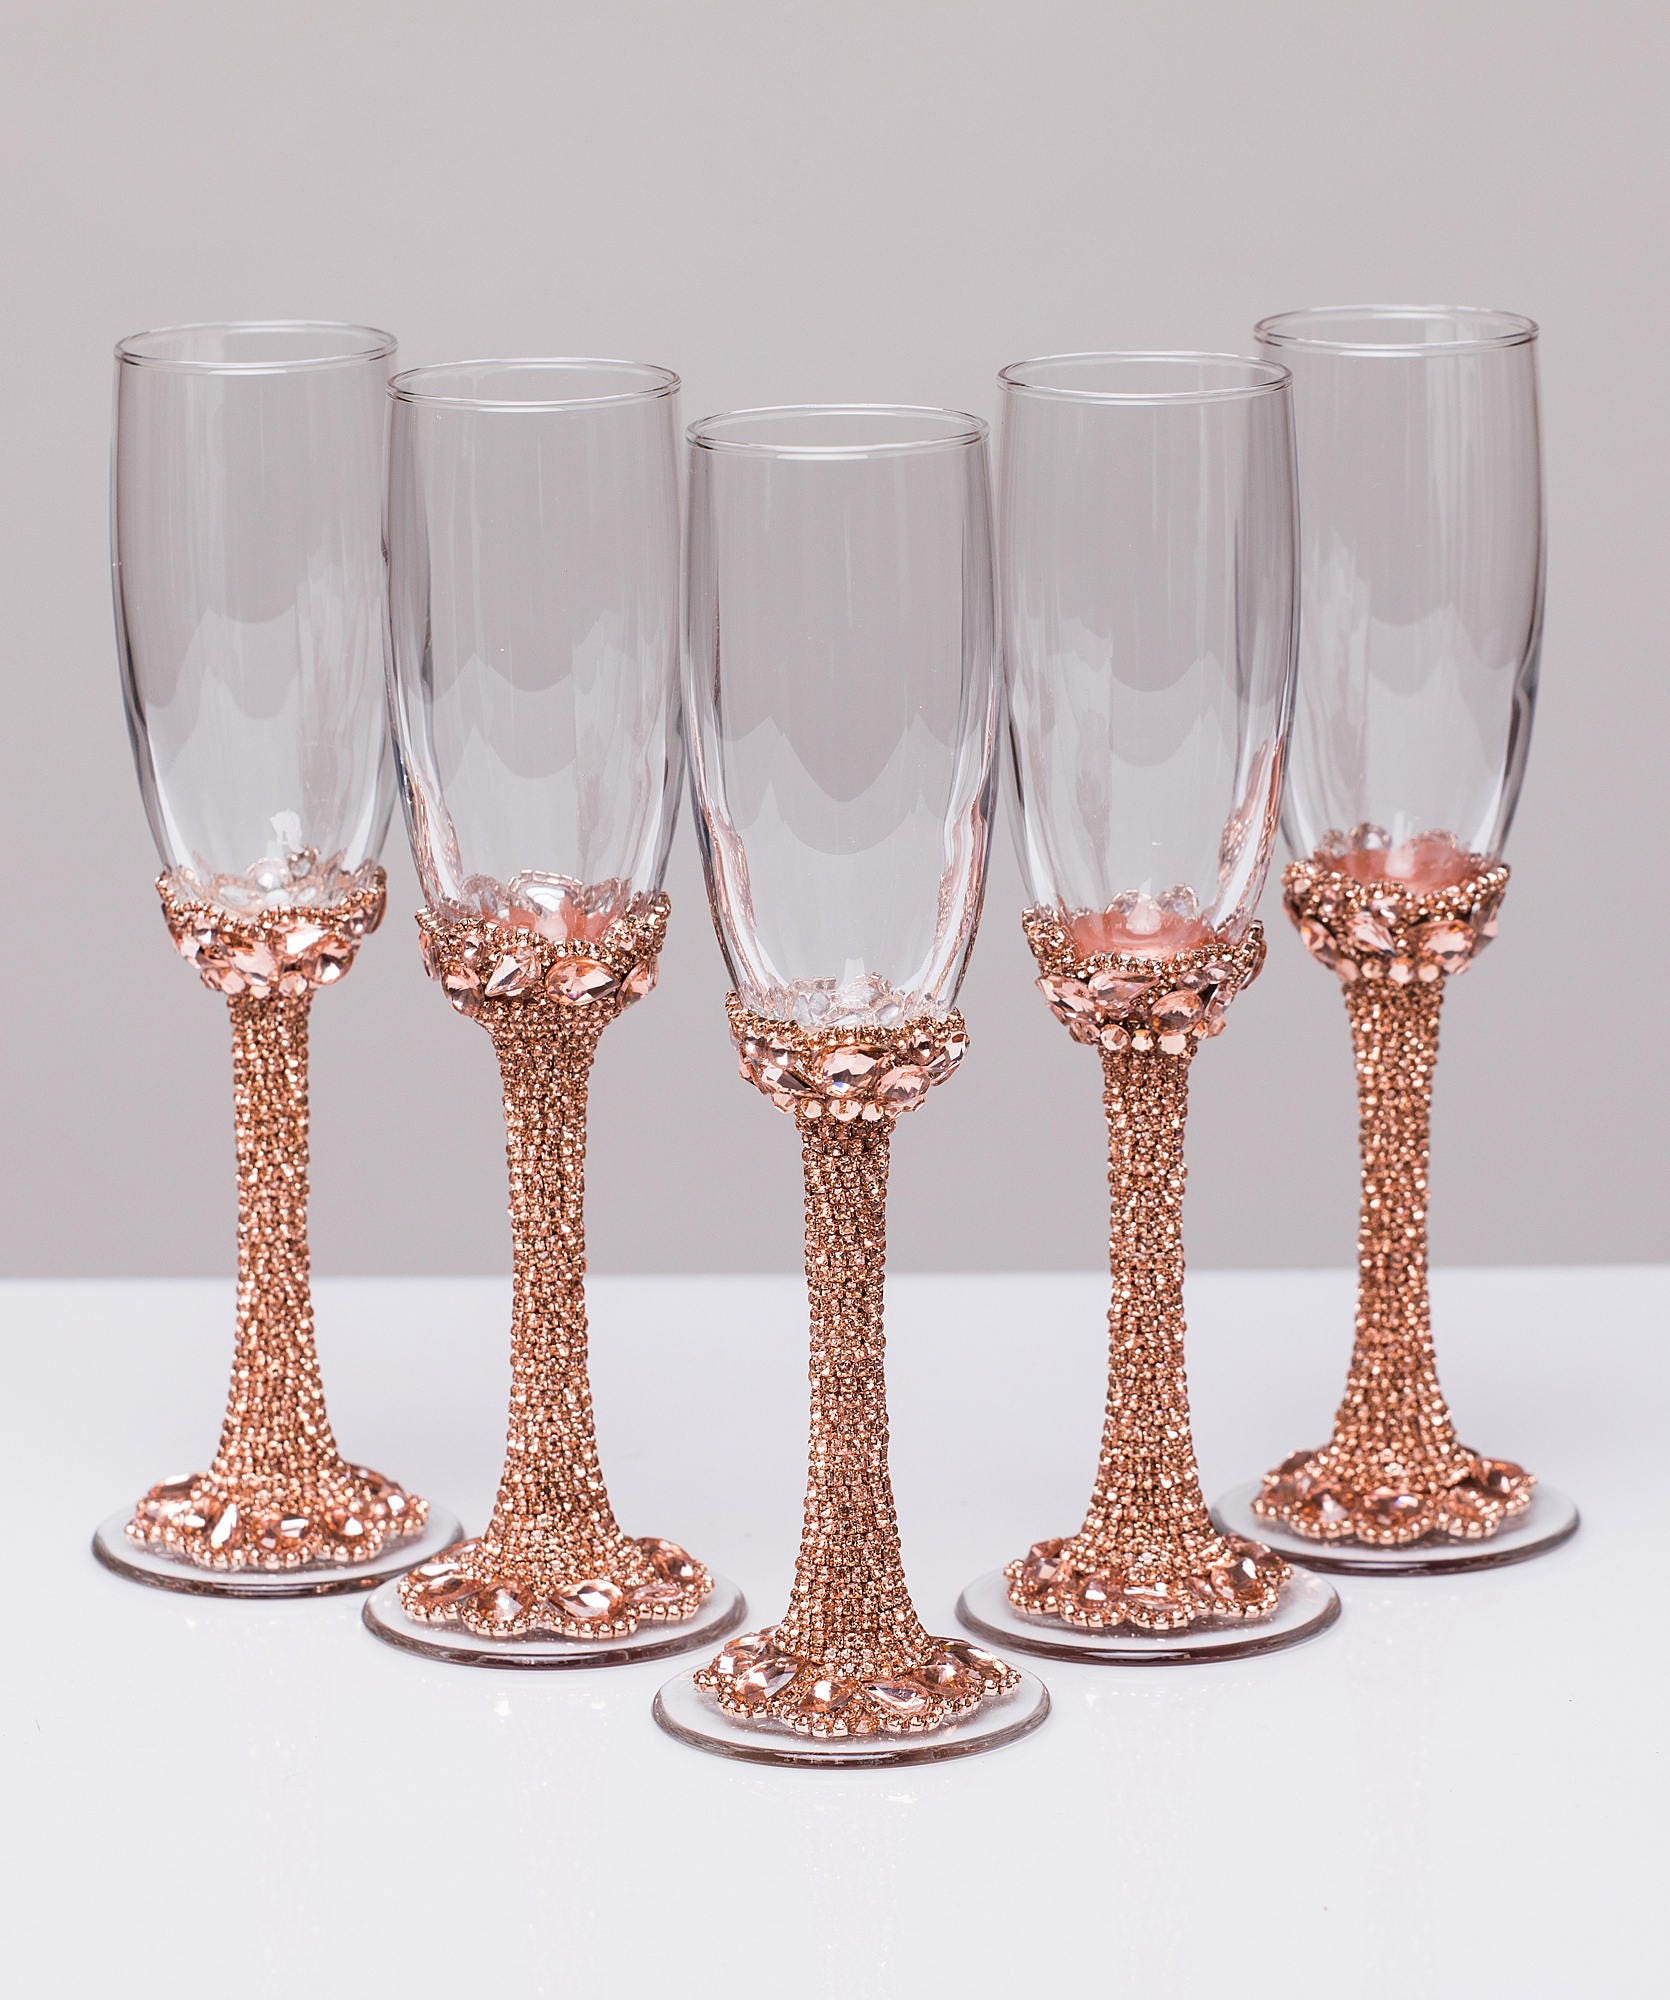 Personalized glasses rose gold Champagne flutes wedding